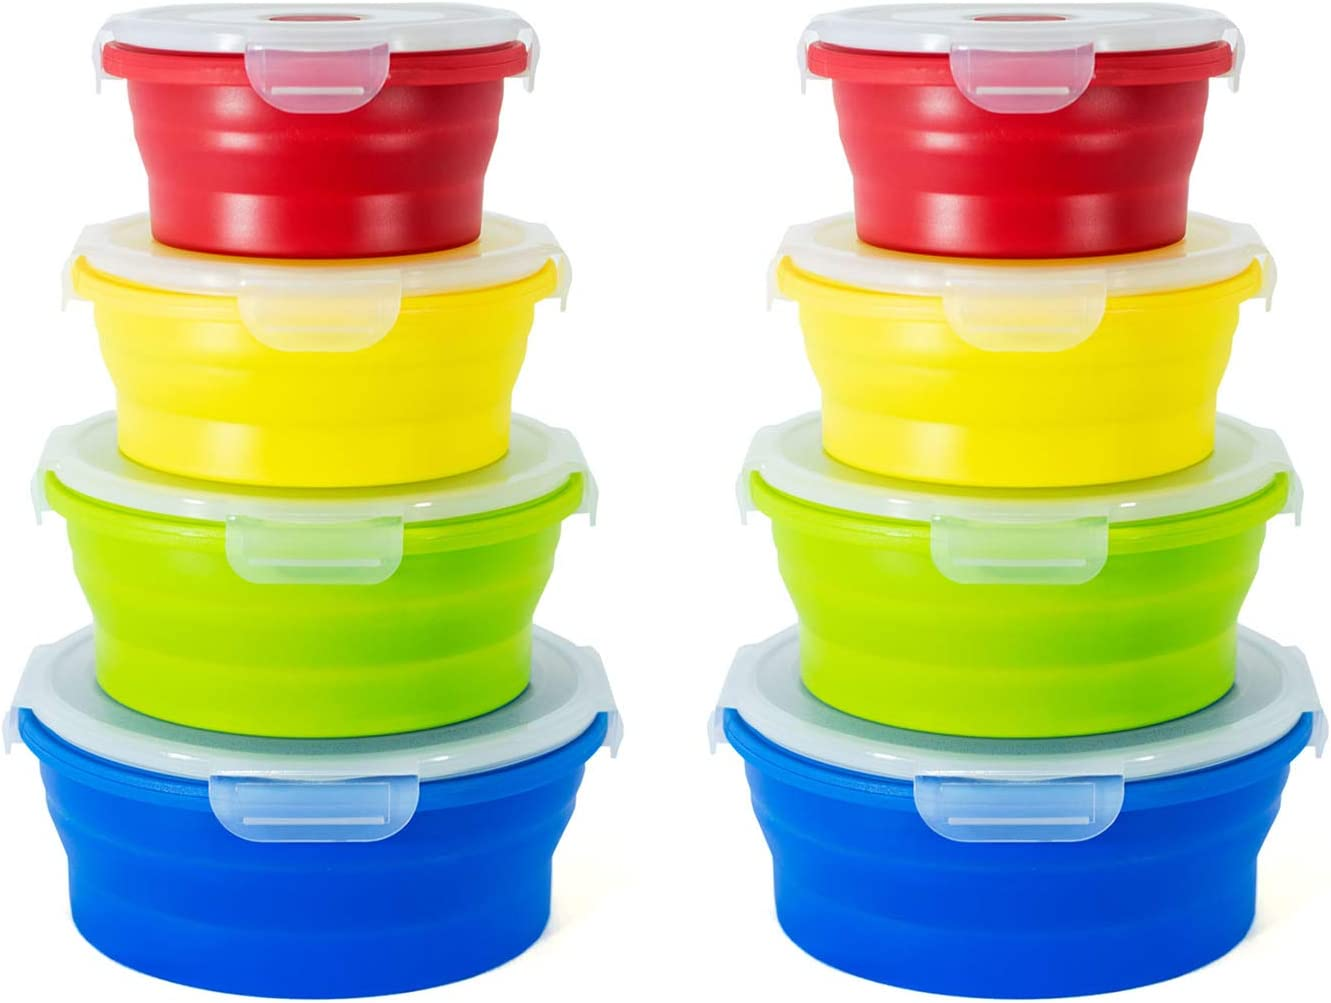 STOGO Collapsible Food Storage Containers- Set of 8 Leak Proof with Airtight Plastic BPA-Free Lids, for Kitchen Storage, Lunch Boxes, Meal Prep (2 Sets Round)